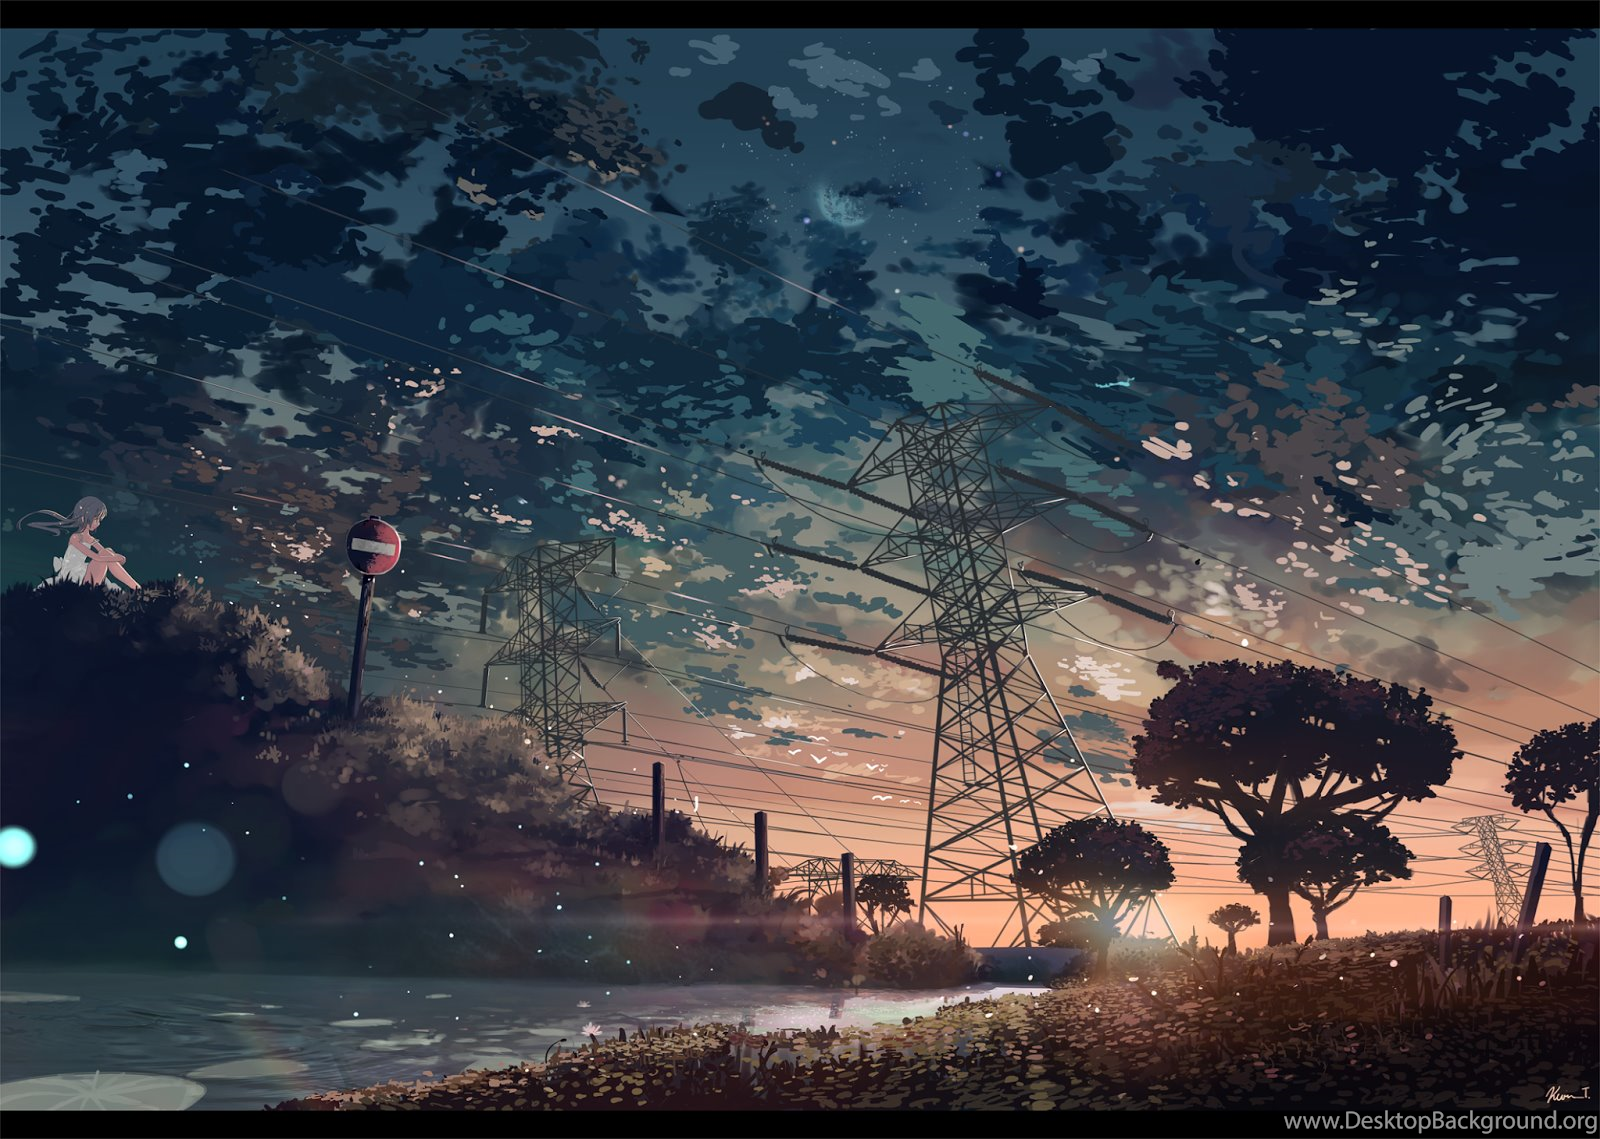 Best Wallpaper Of All Time Anime Scenery Scenery Wallpaper Anime Scenery Wallpaper